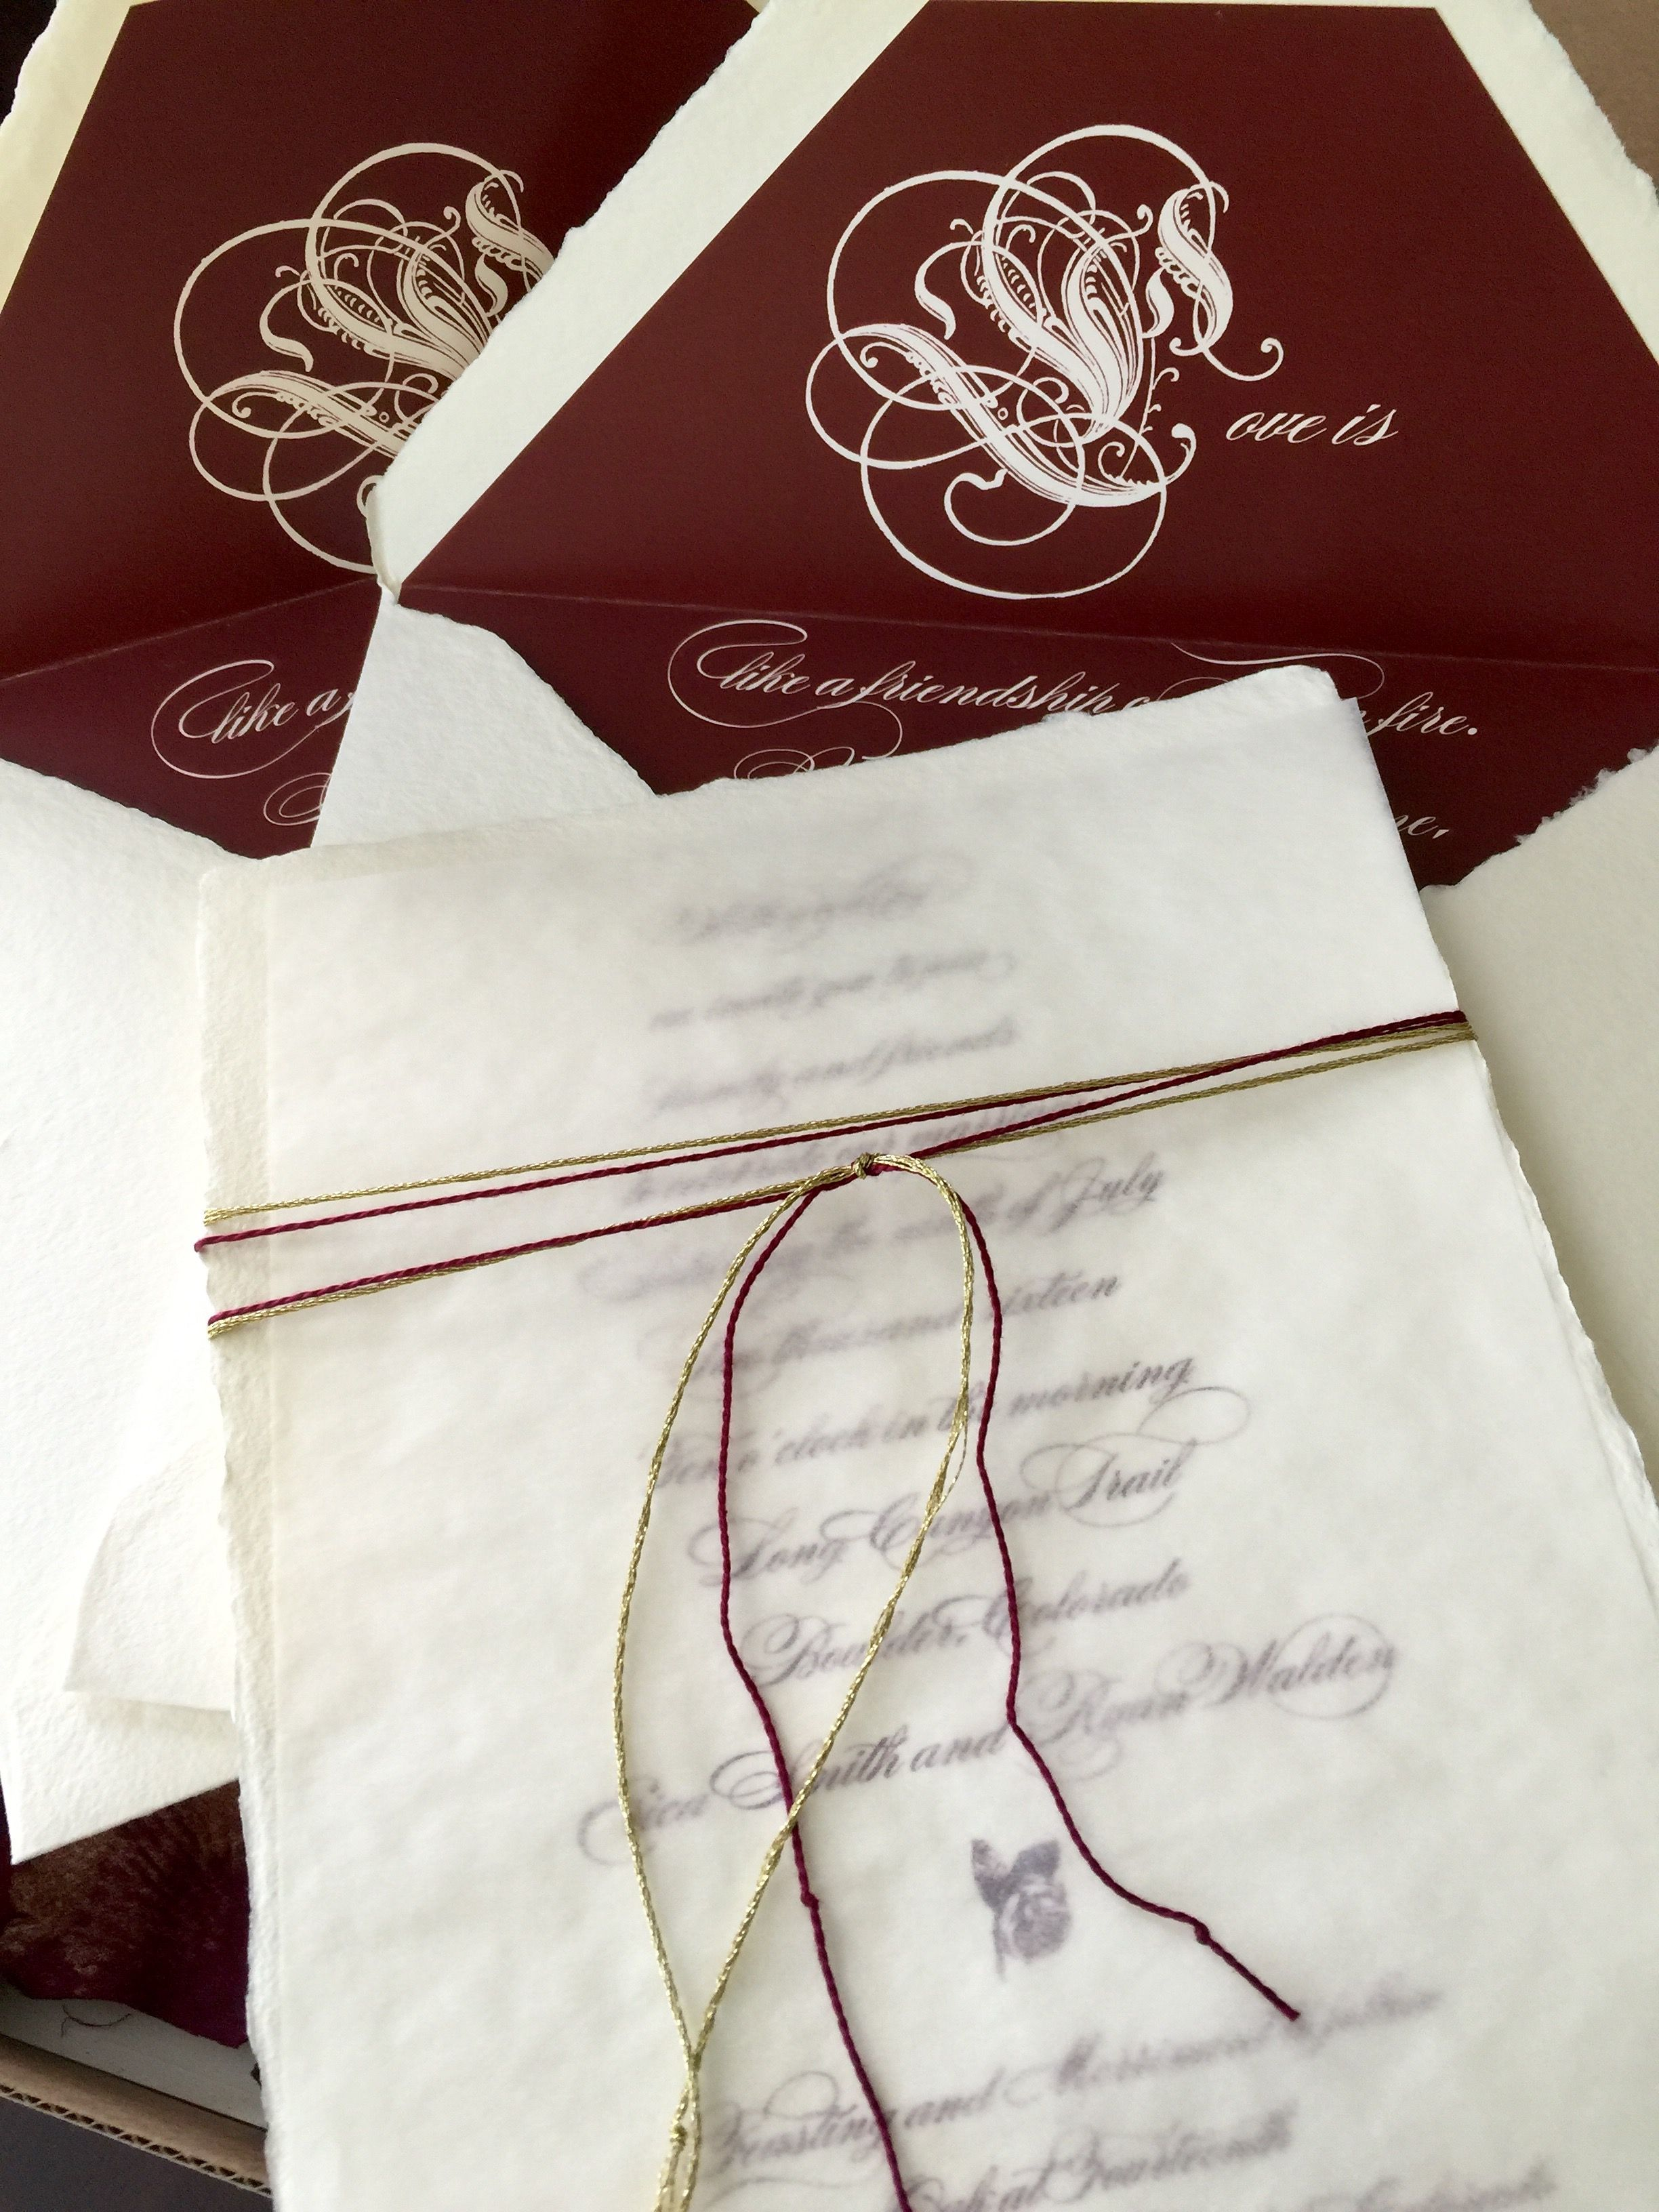 The wedding invitation was sent in a large box with silk rose petals ...